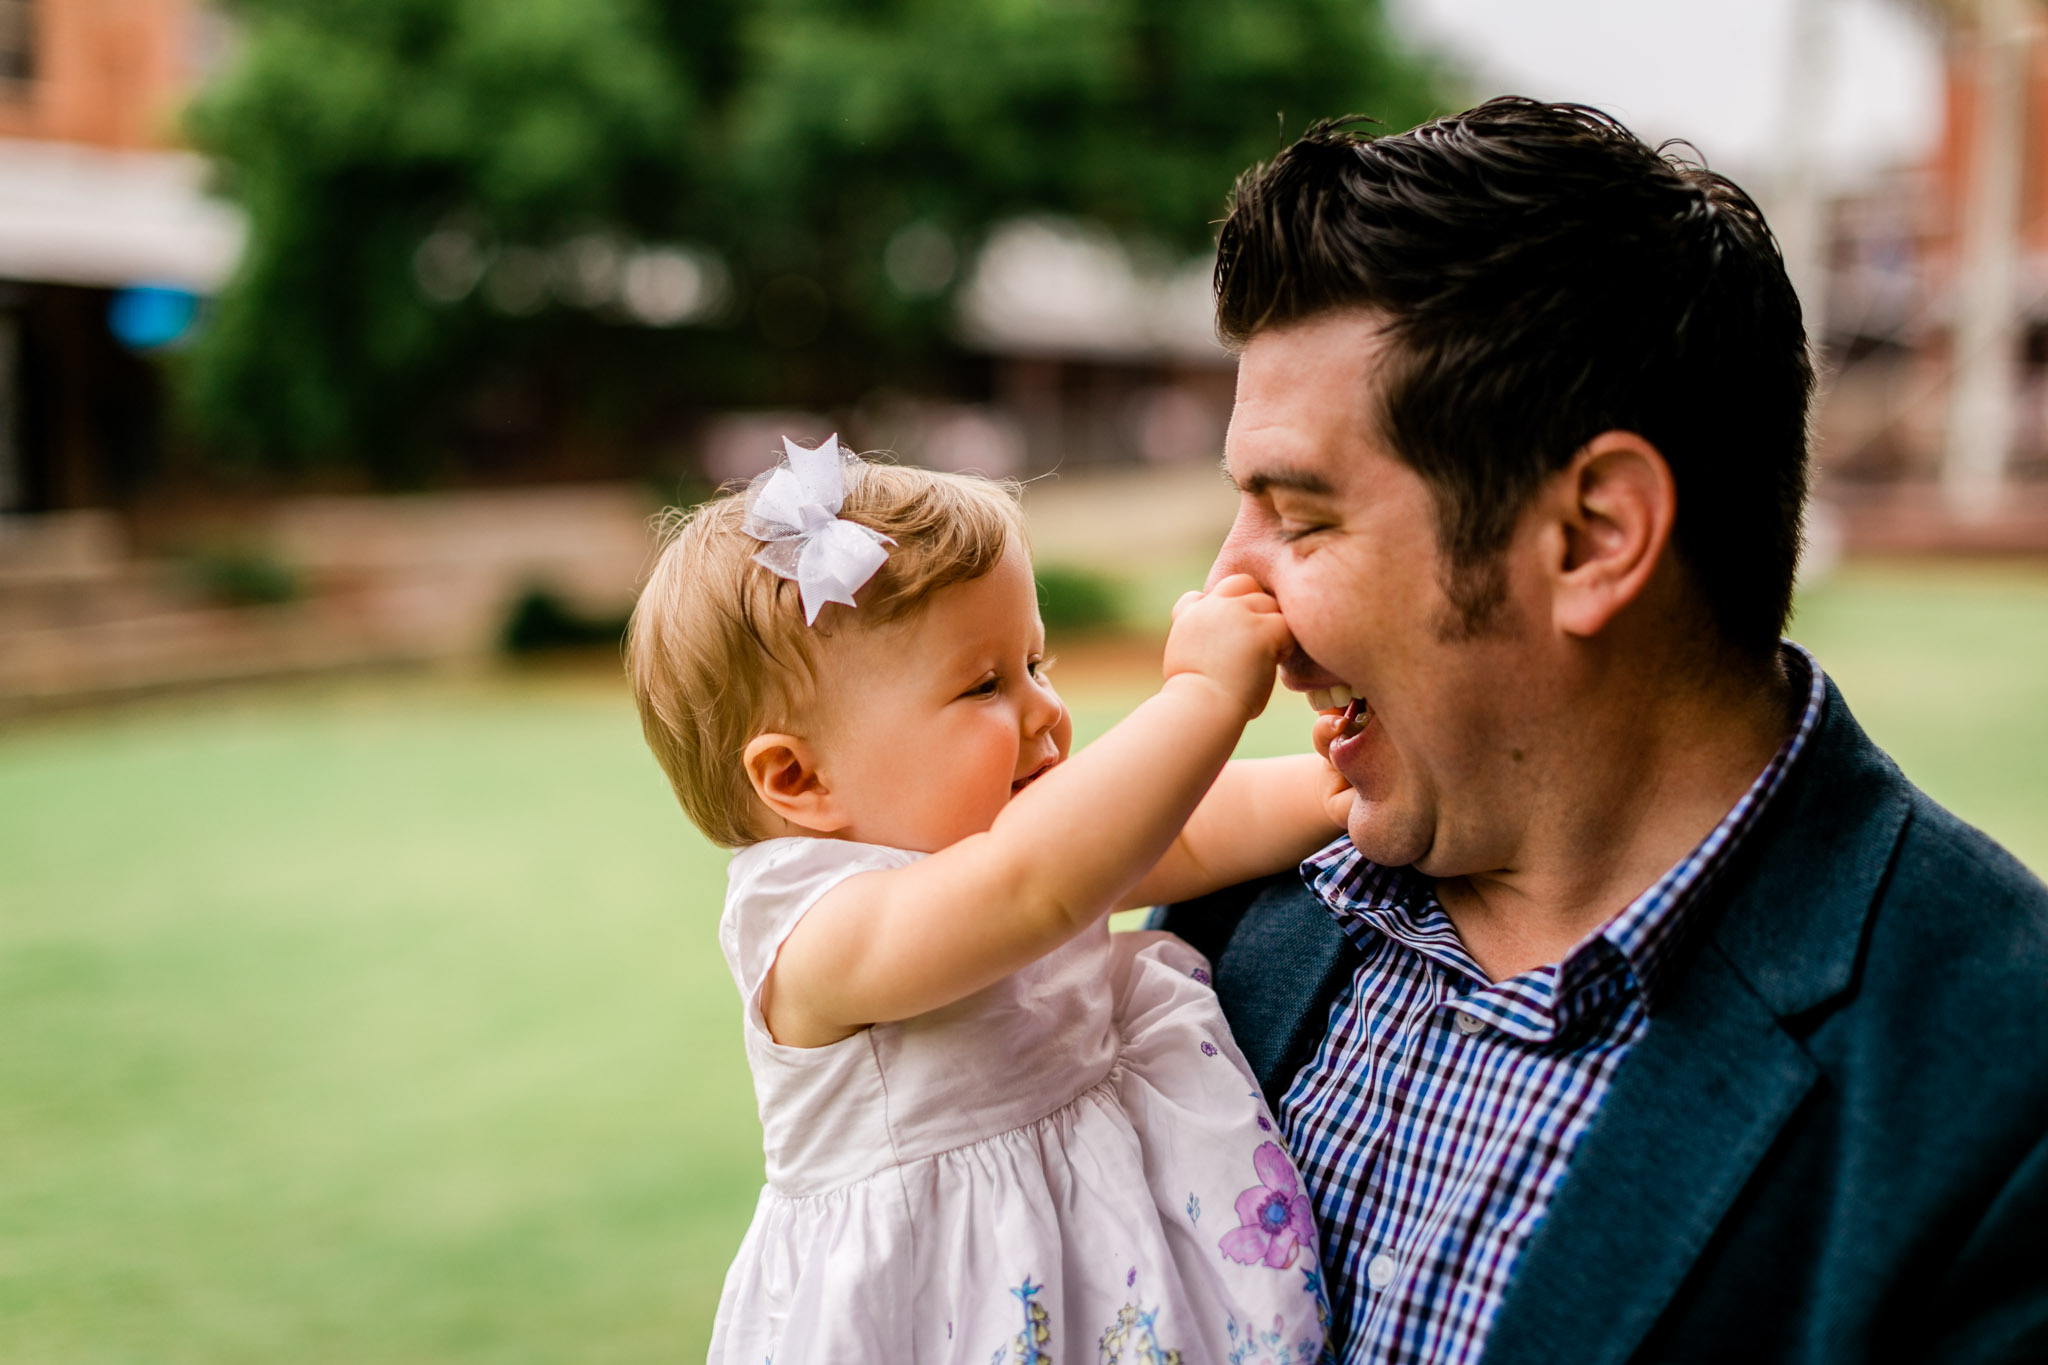 Durham Family Photographer | By G. Lin Photography | Baby girl pulling on dad's nose